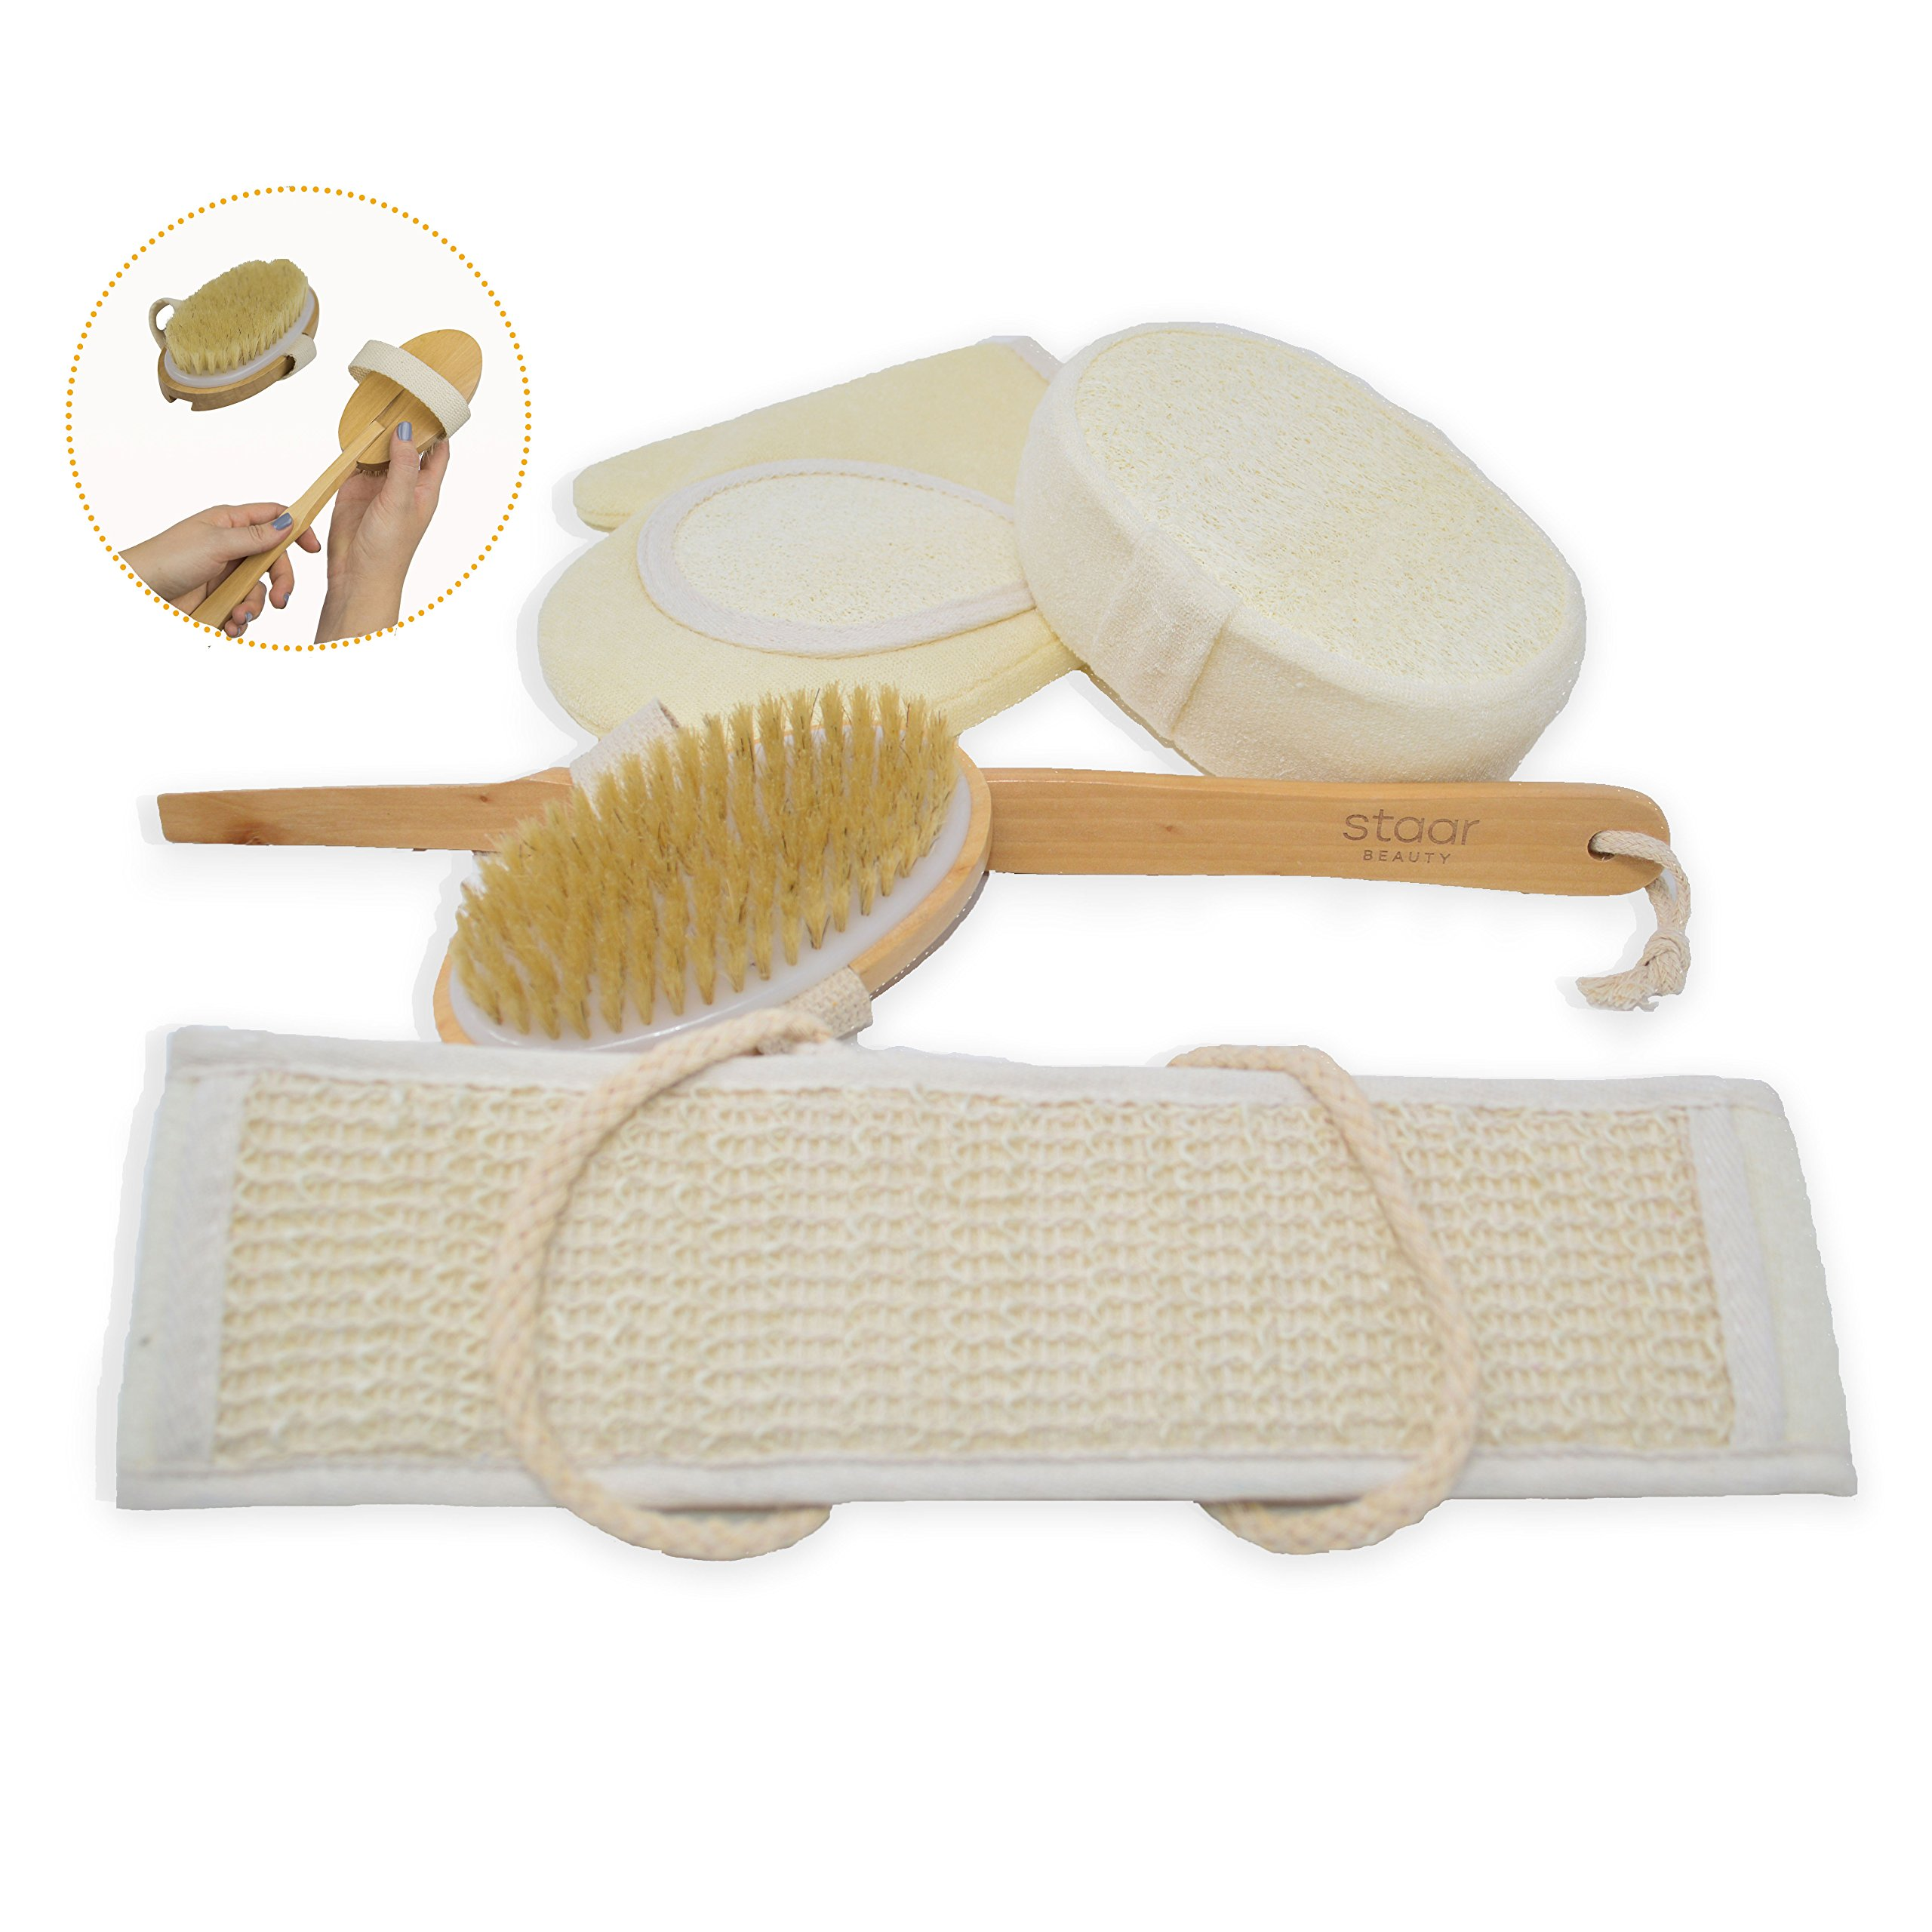 Loofah Bath Set and Dry Brush - Sponge, Loofah Back Scrubber and Glove Plus Dry Brush - This Exfoliating Bath Set Can Improve Skin Health and Cellulite, Remove Dead Skin, Stimulate Blood Circulation